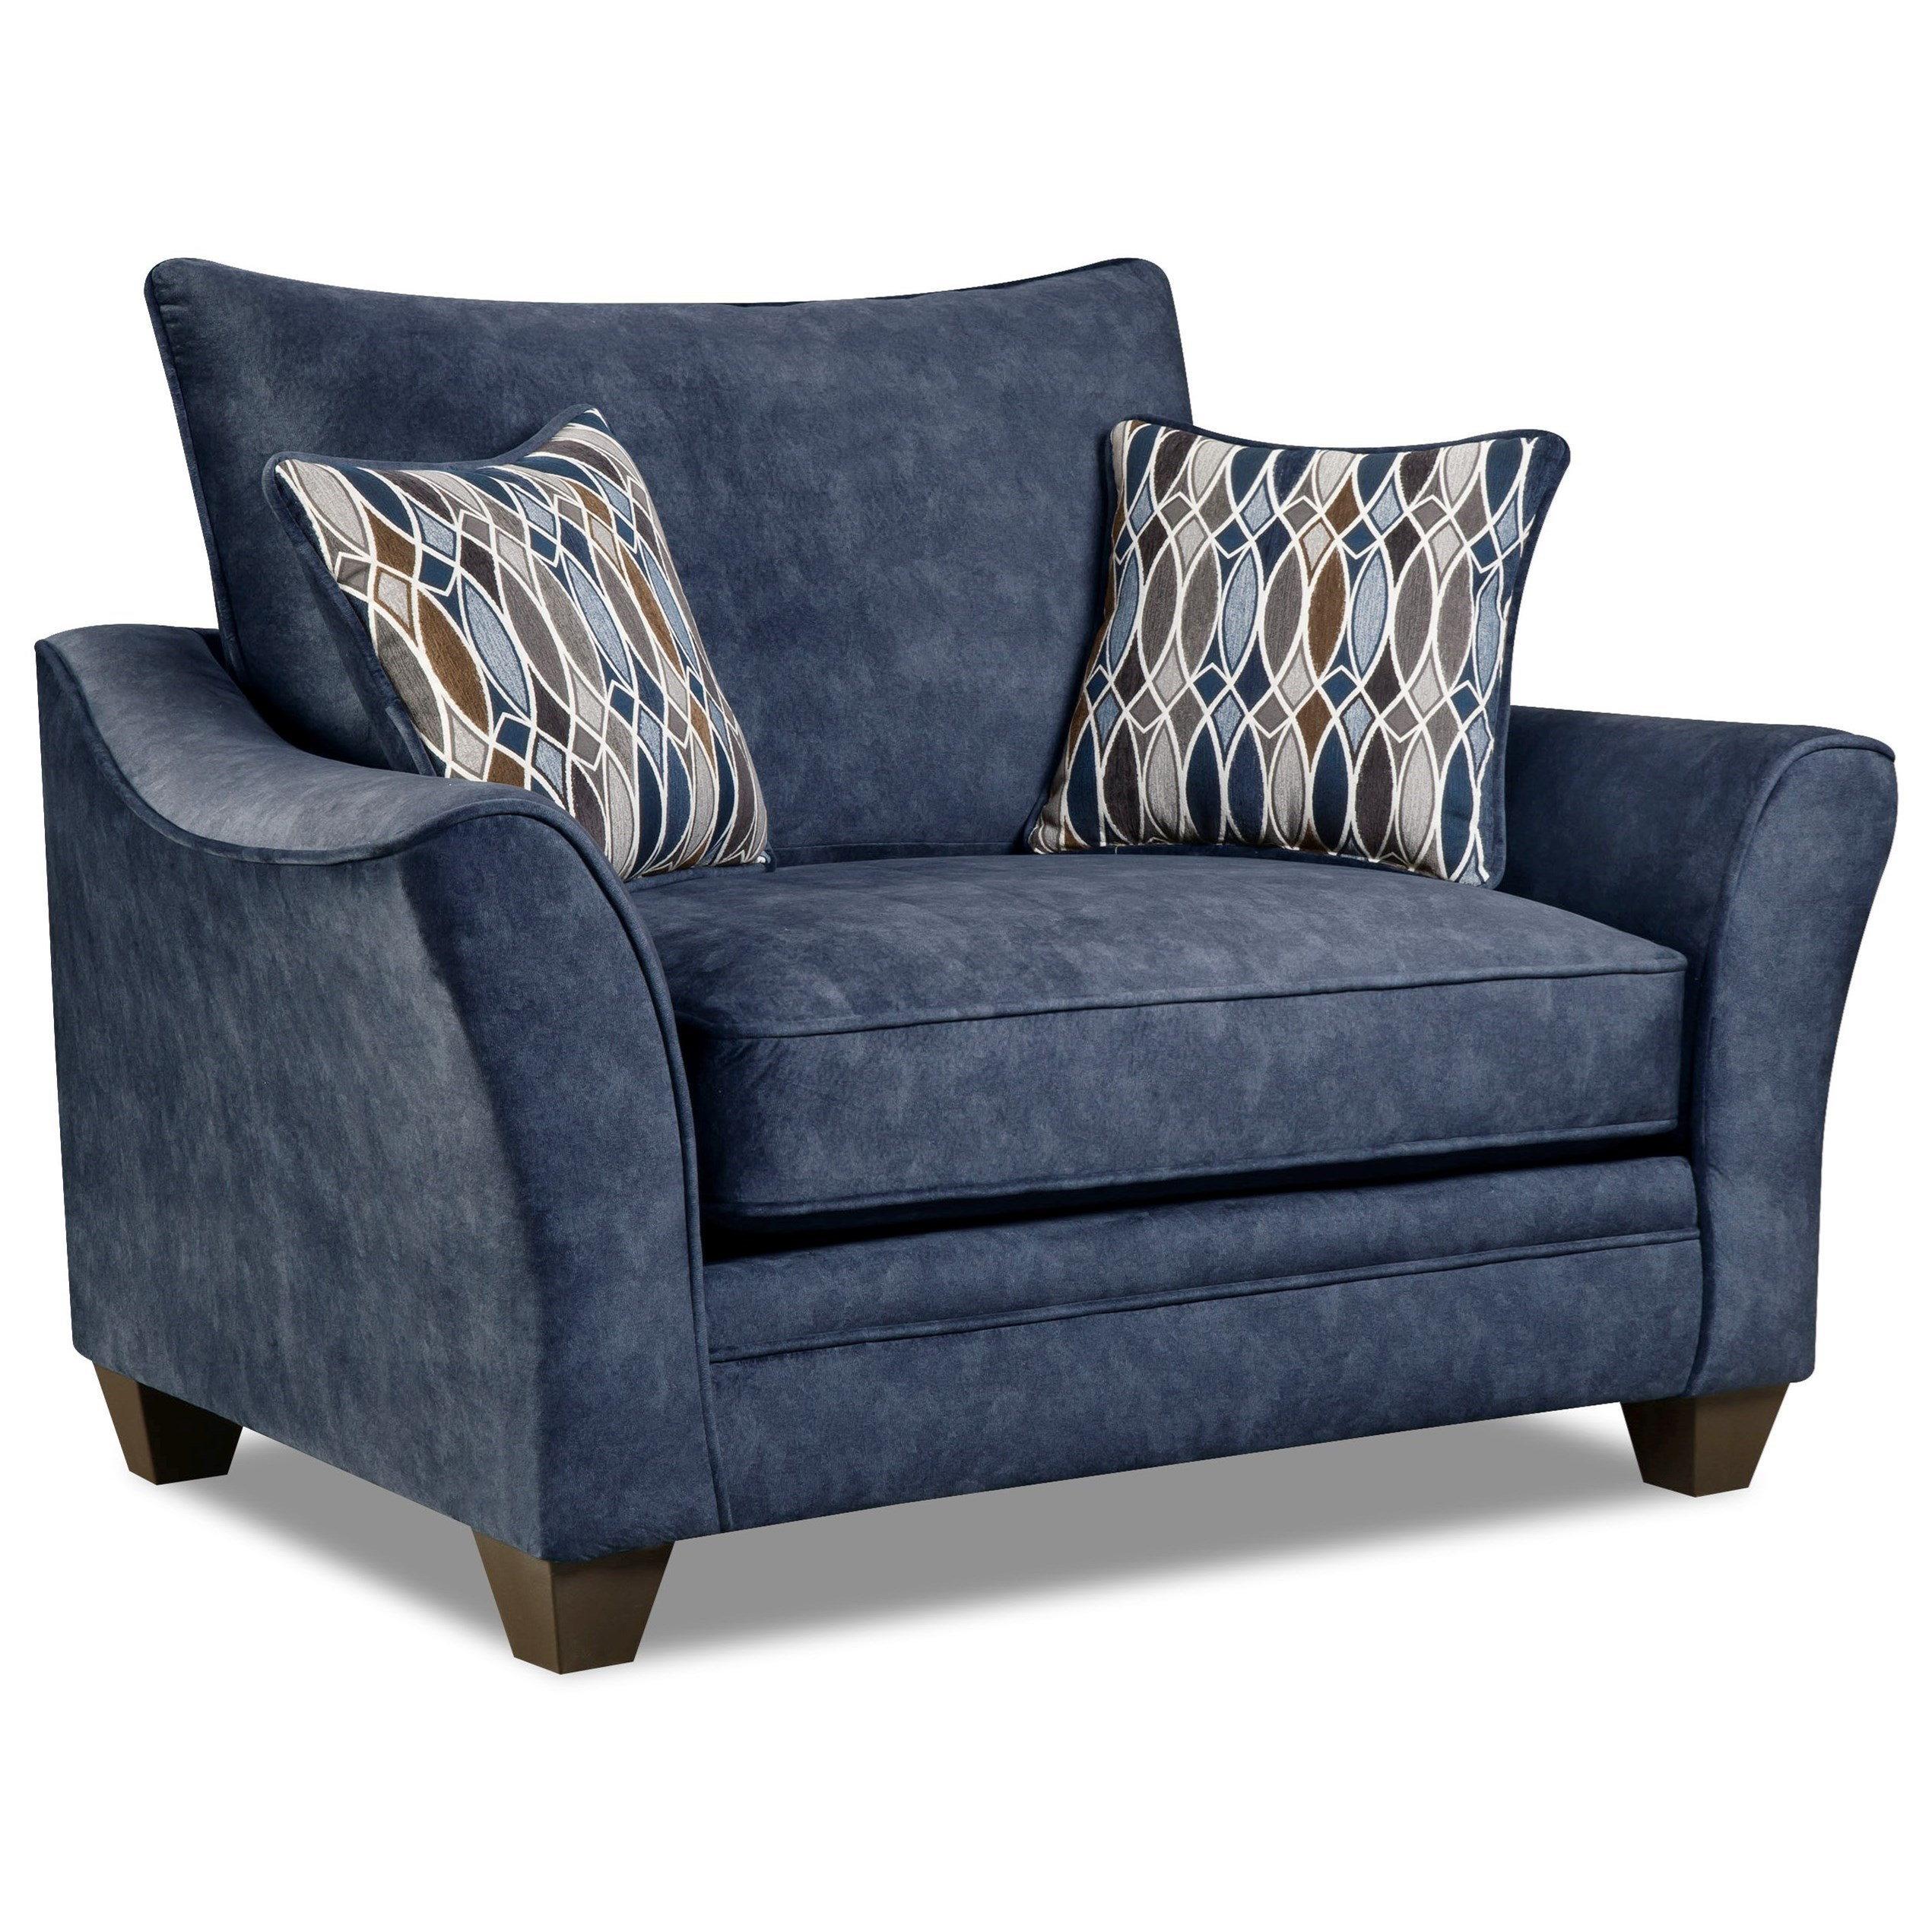 Awesome American Furniture 3850 3851 Athena Navy Chair And A Half With Casual Look  | Great American Home Store | Chair U0026 A Half